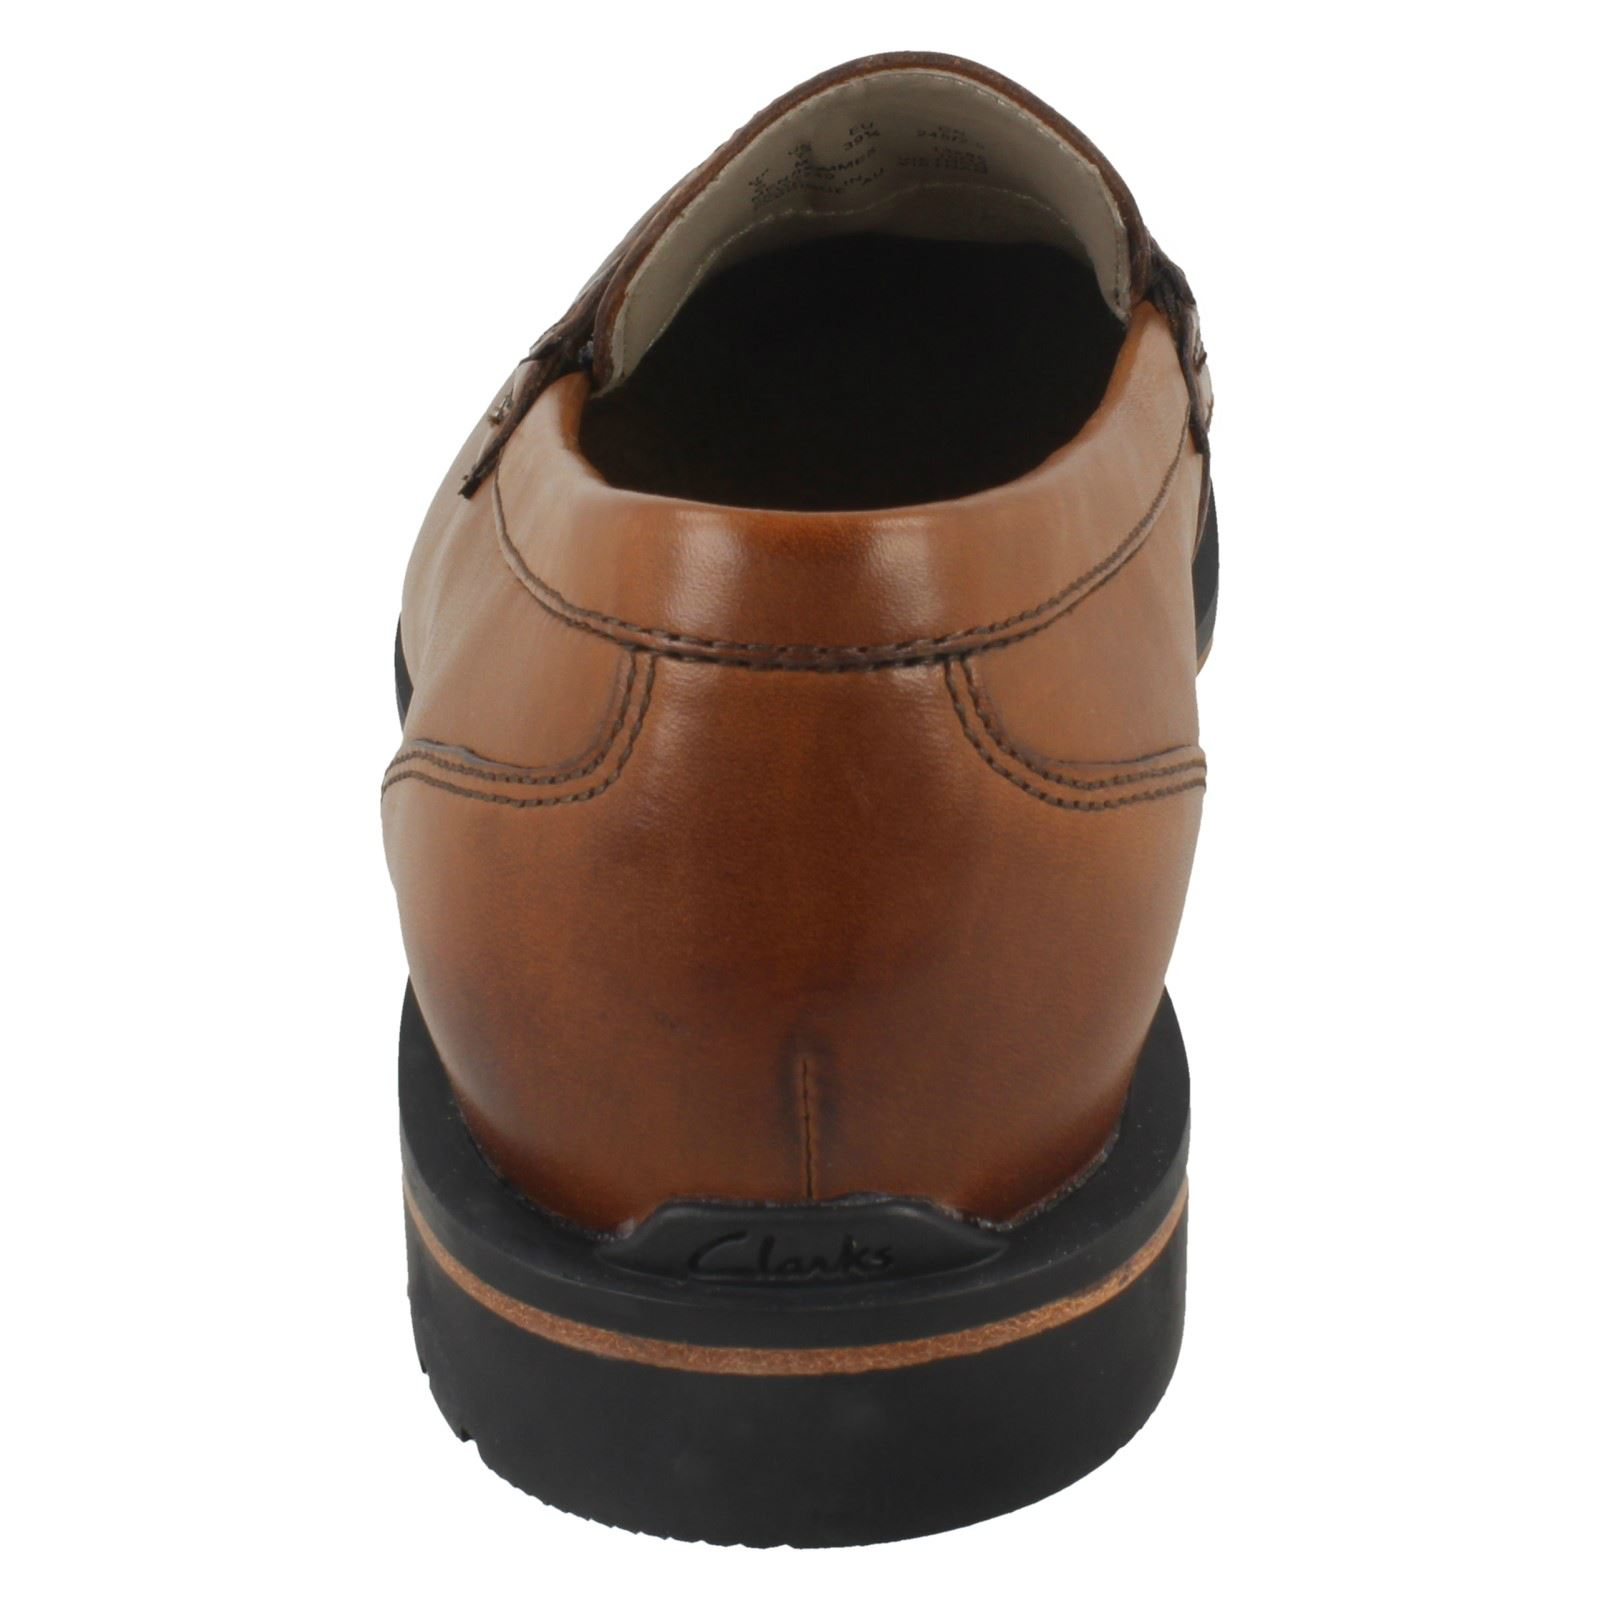 Hommes marron 'gatley Smart Step' Clarks Chaussures On Slip Shoes fxfrUTa